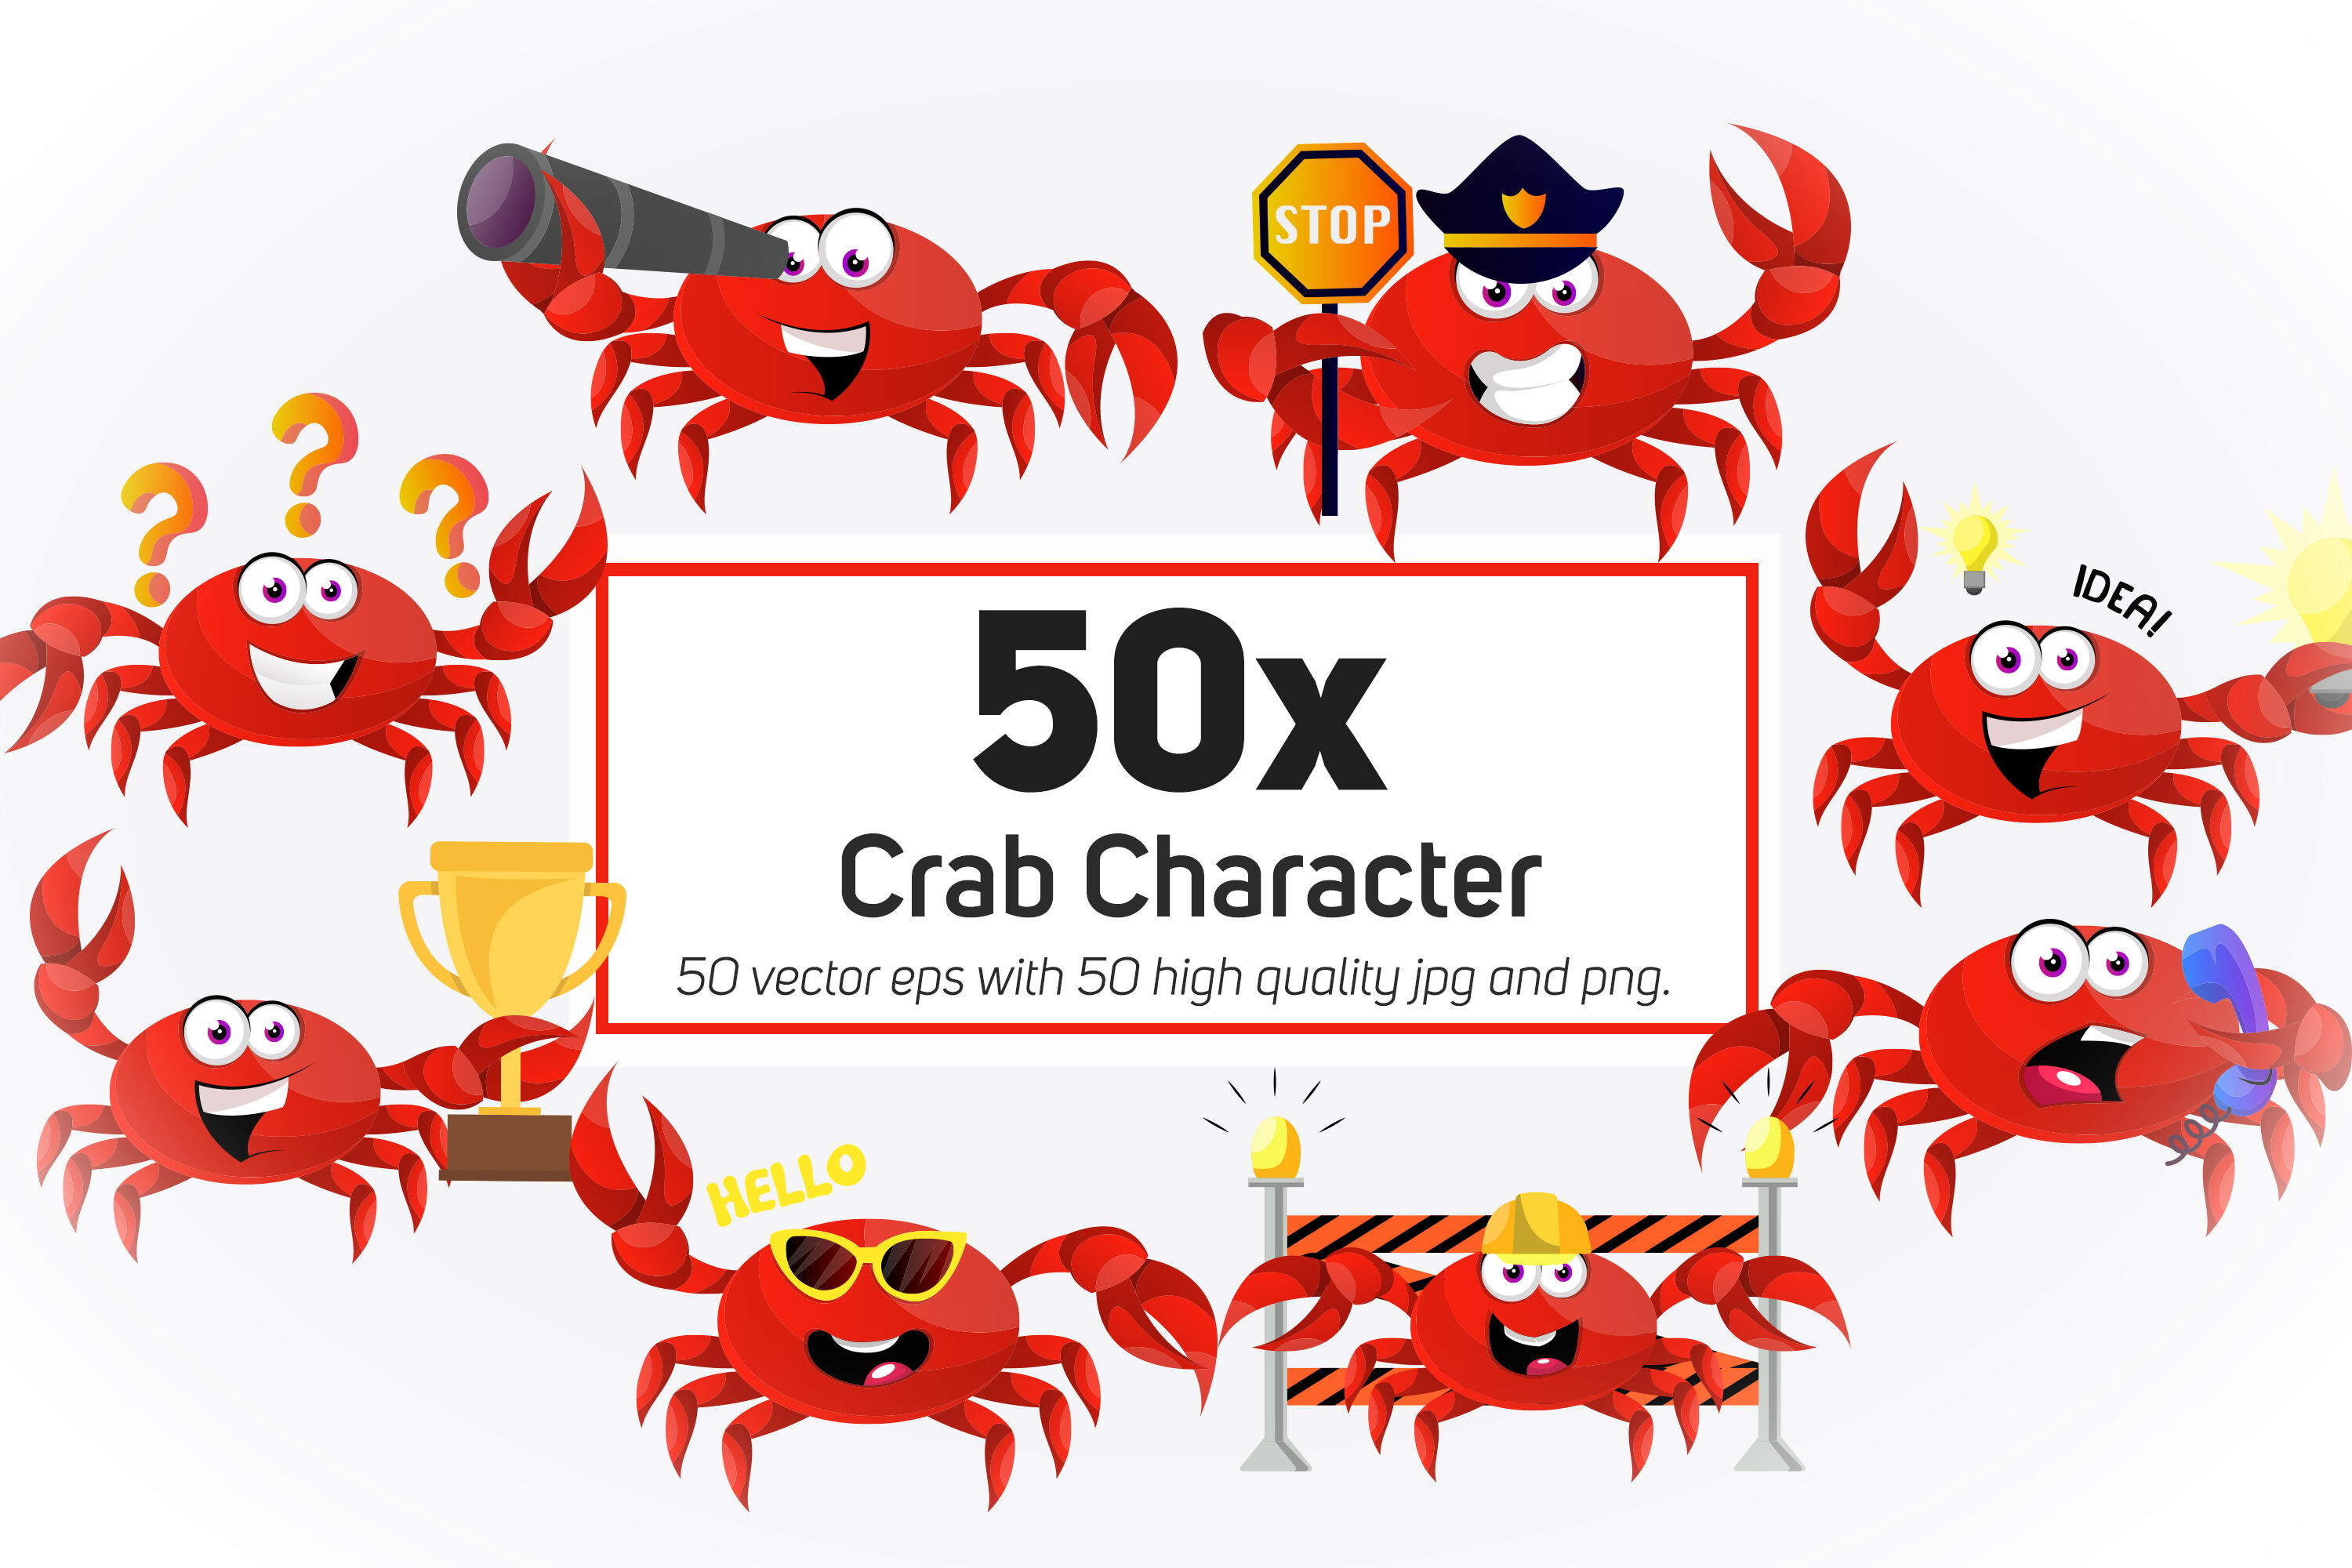 50x Crab Character And Mascot Collection Illustration By Morphart